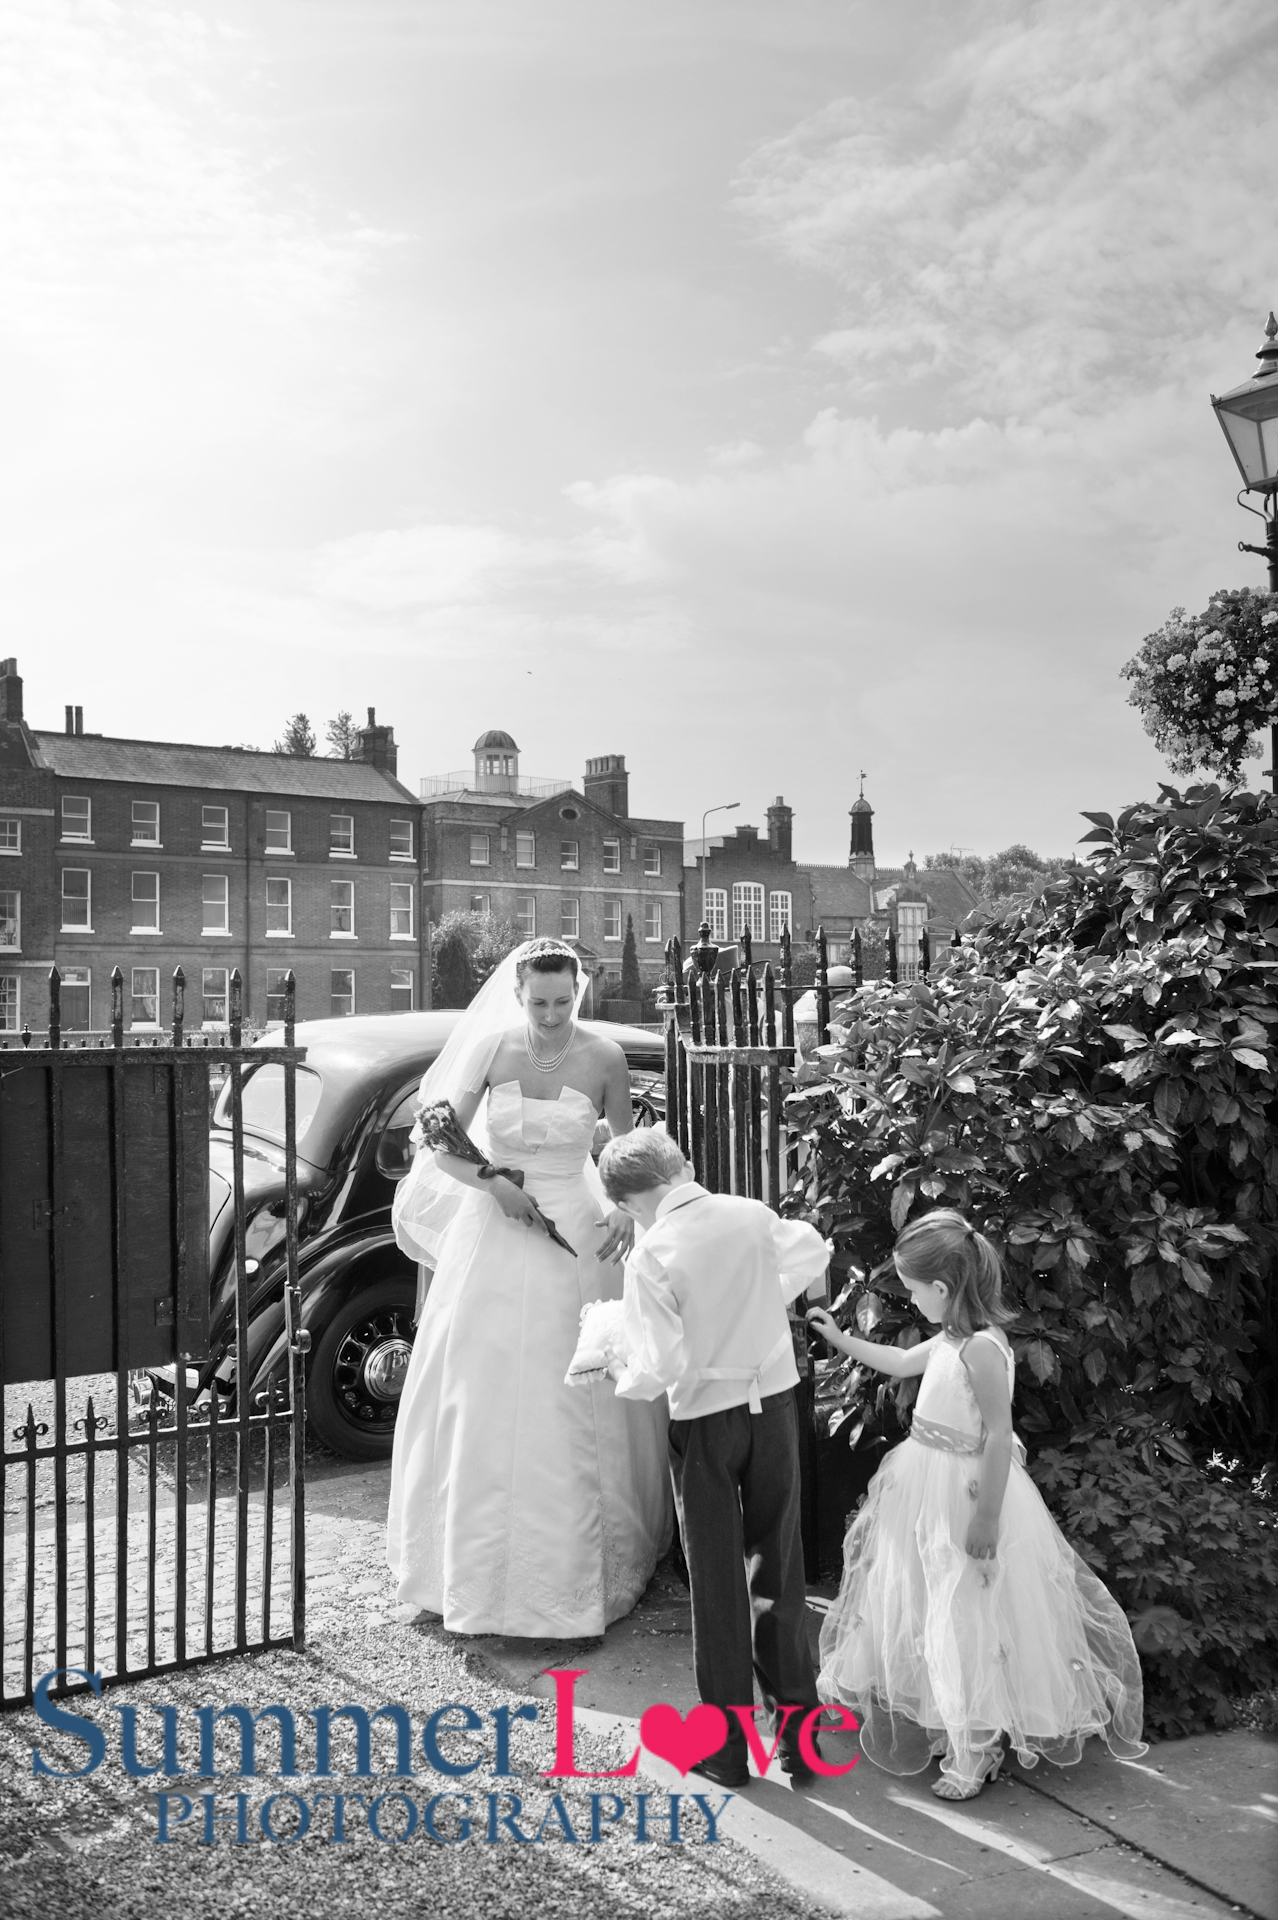 Nicole Tristan http://summerlovephotography.co.uk/blog/nicole-tristan-got-married-peckover-house-wisbech-cambridgeshire/